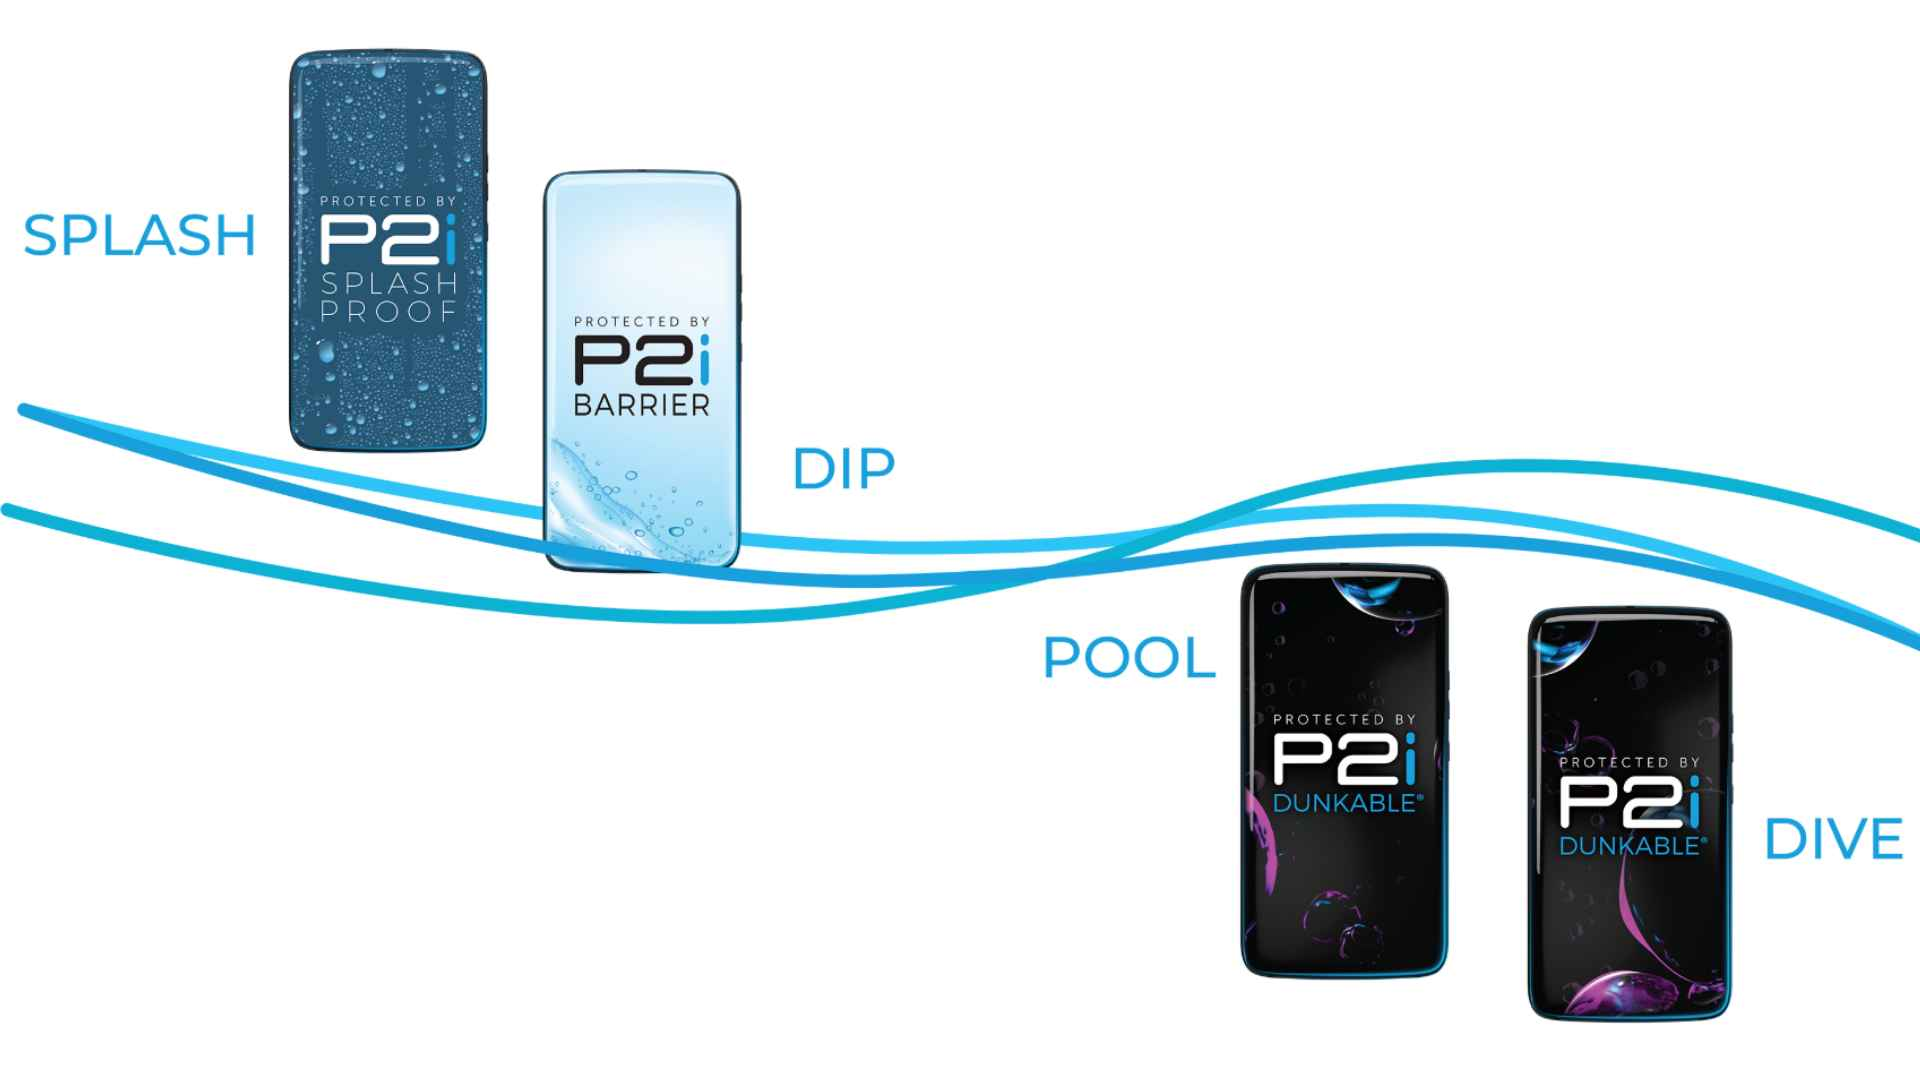 P2i is a nanotechnology company that produces liquid repellent nano-coating protection